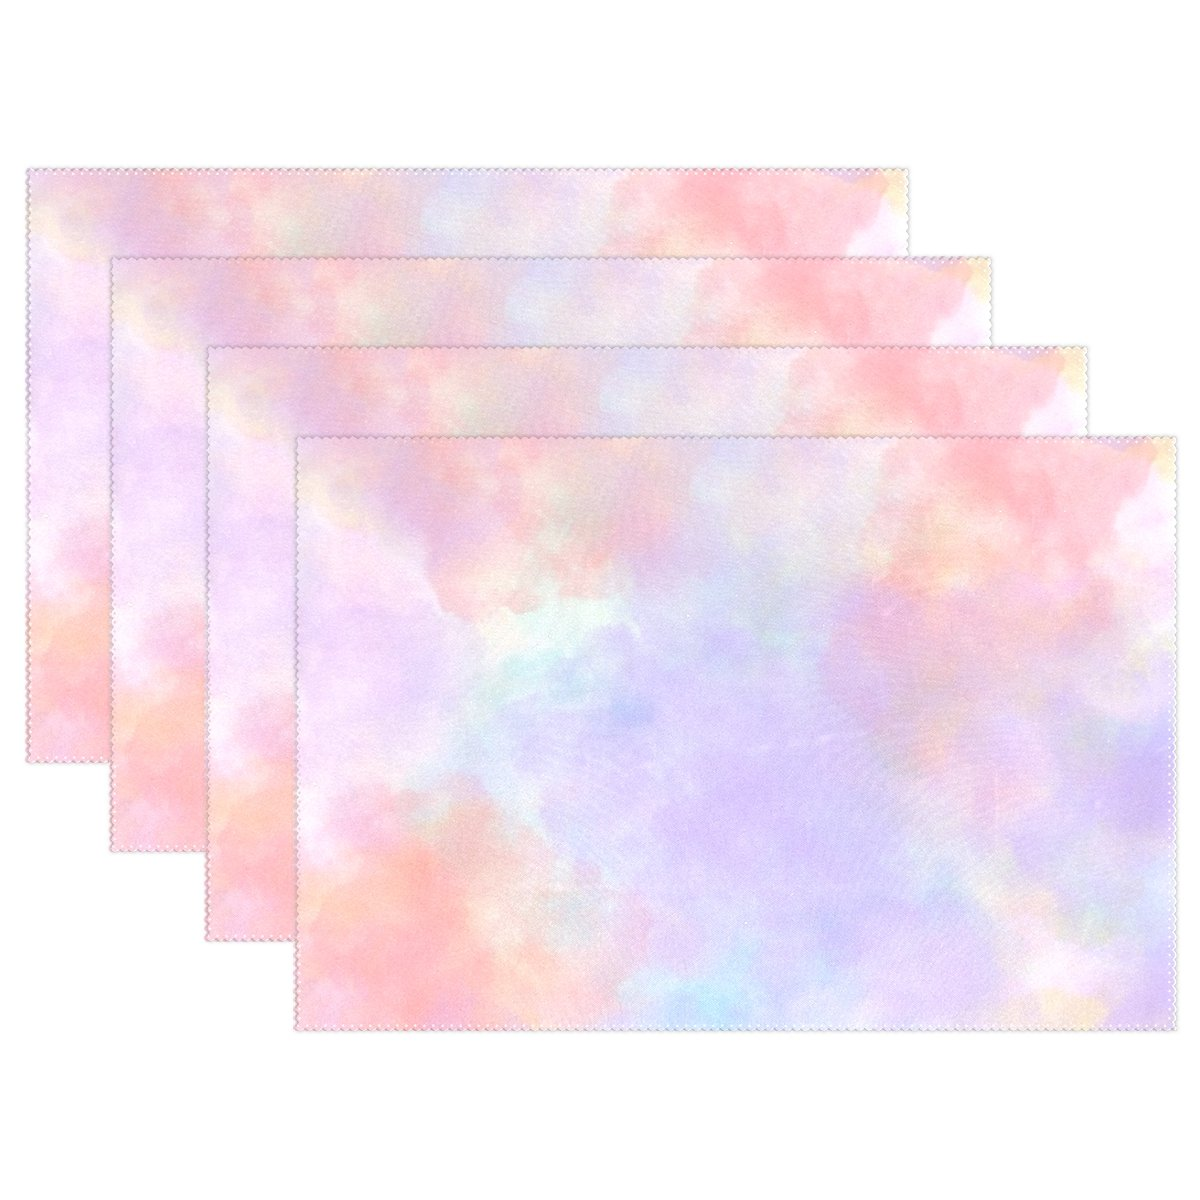 YPink Pastel Scrapbook Paper Shades Spetters Placemats Set Of 4 Heat Insulation Stain Resistant For Dining Table Durable Non-slip Kitchen Table Place Mats